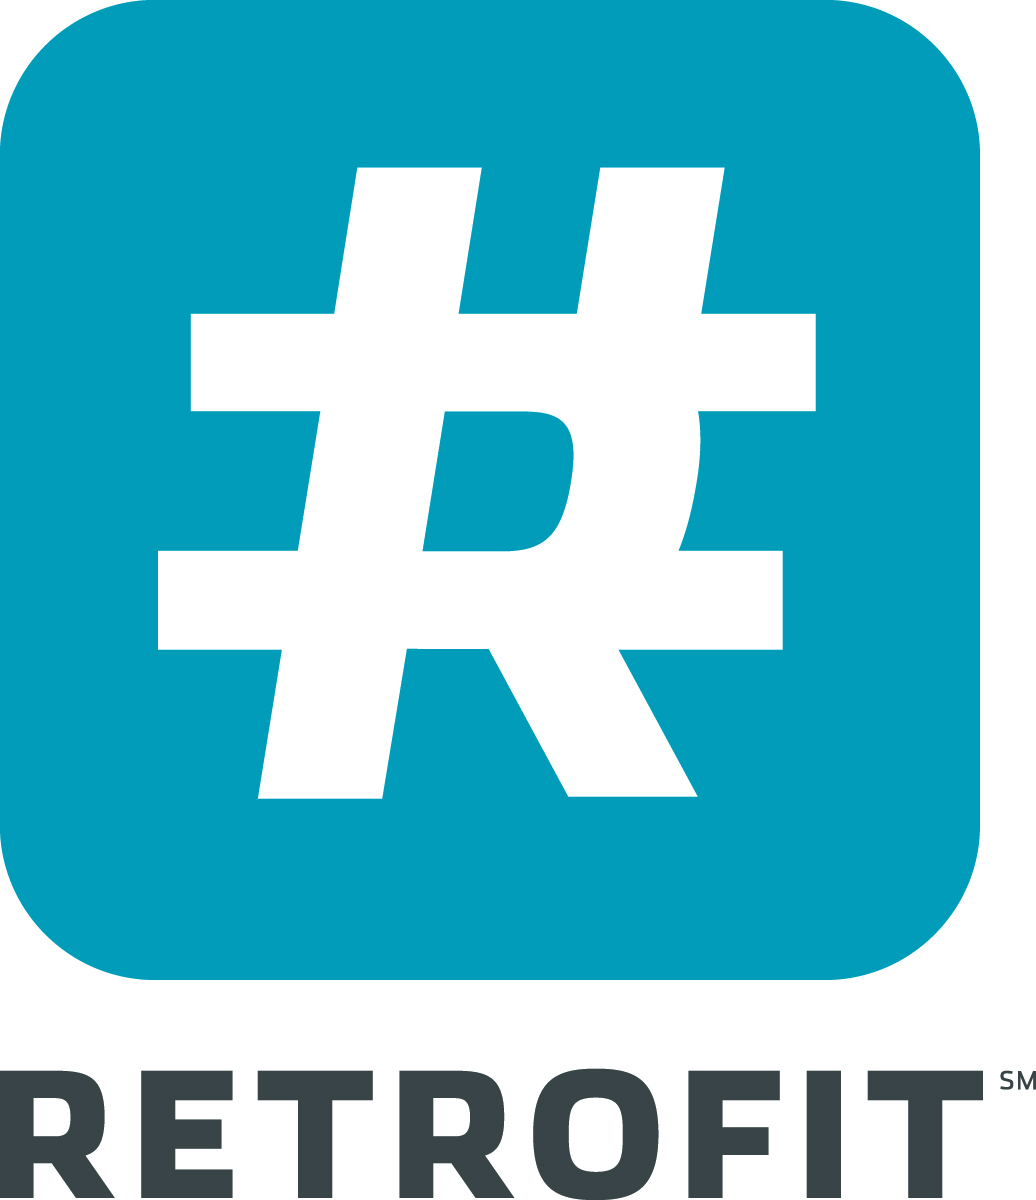 Retrofit Group Launches Online Meetings For Weight Loss At Work Disrupts Traditional Corporate